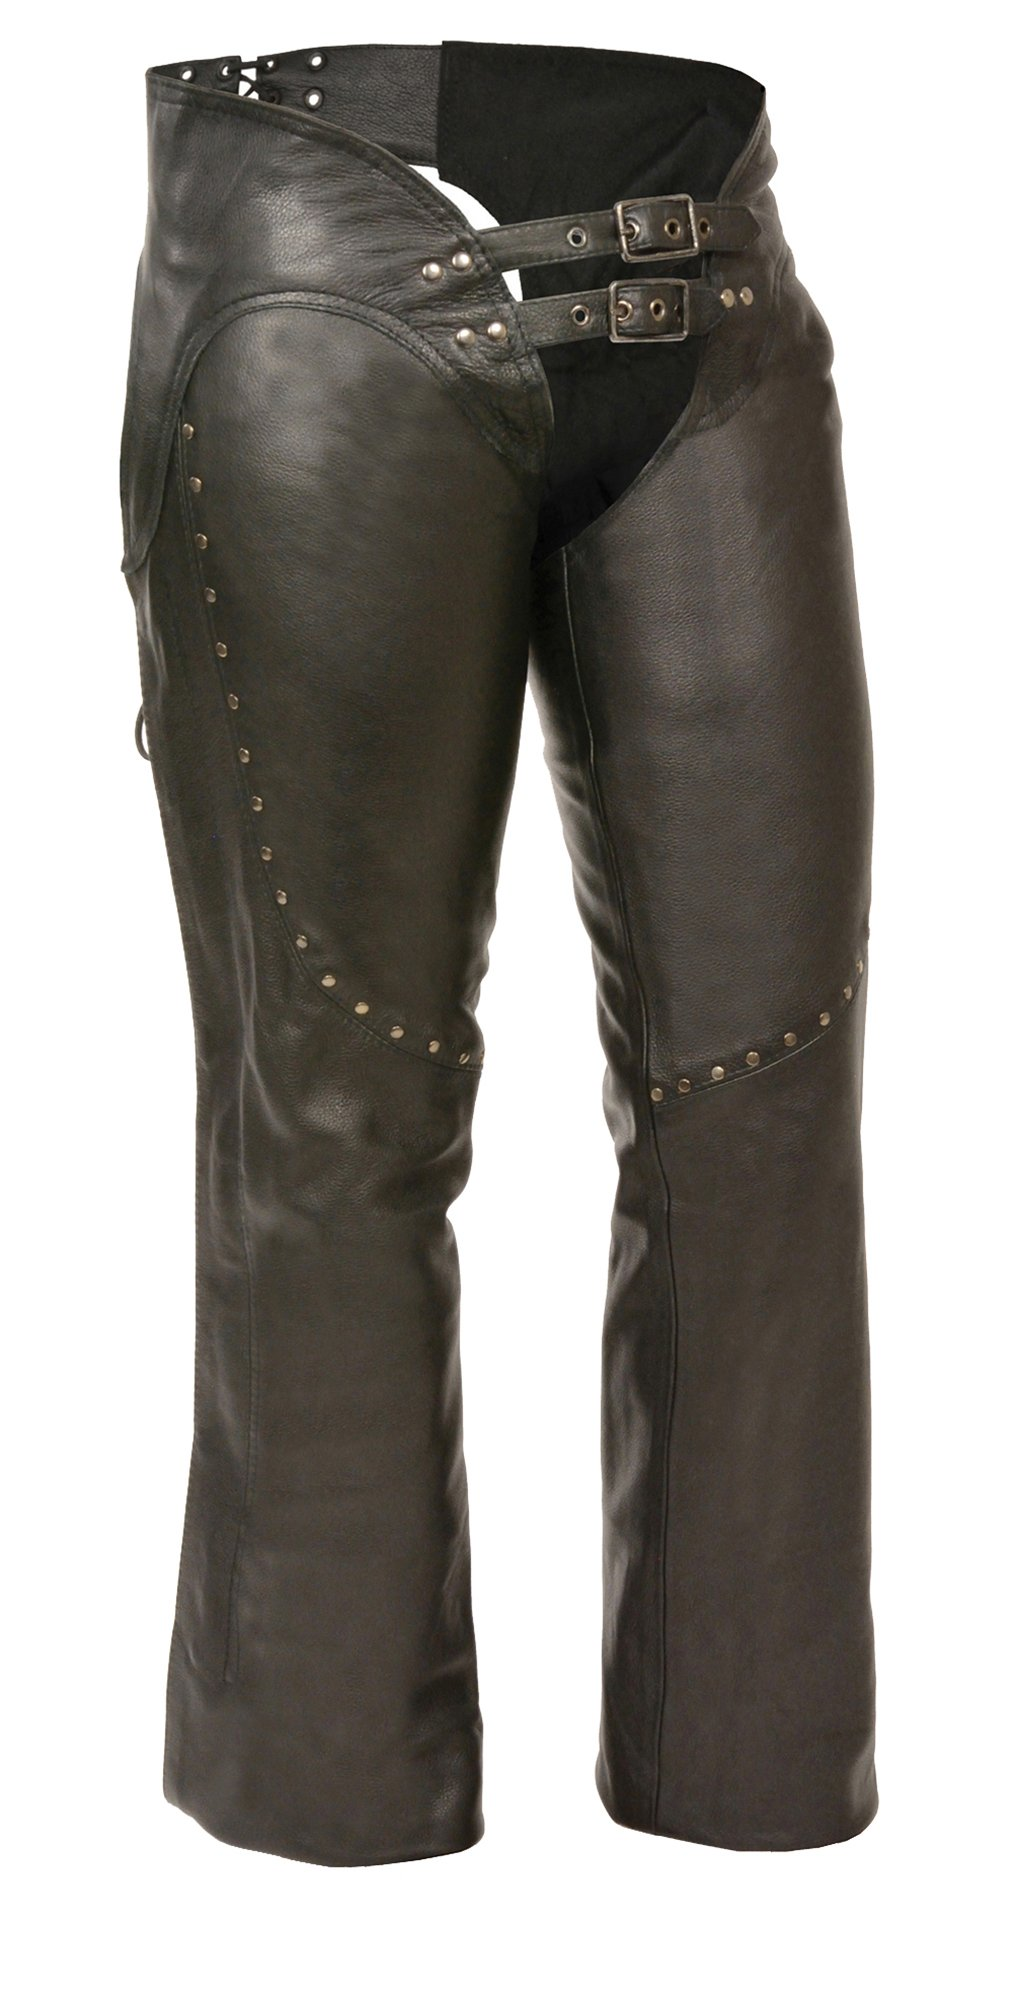 M-BOSS MOTORCYCLE APPAREL-BOS26502-BLACK-Women's low rise leather chaps.-BLACK-LARGE